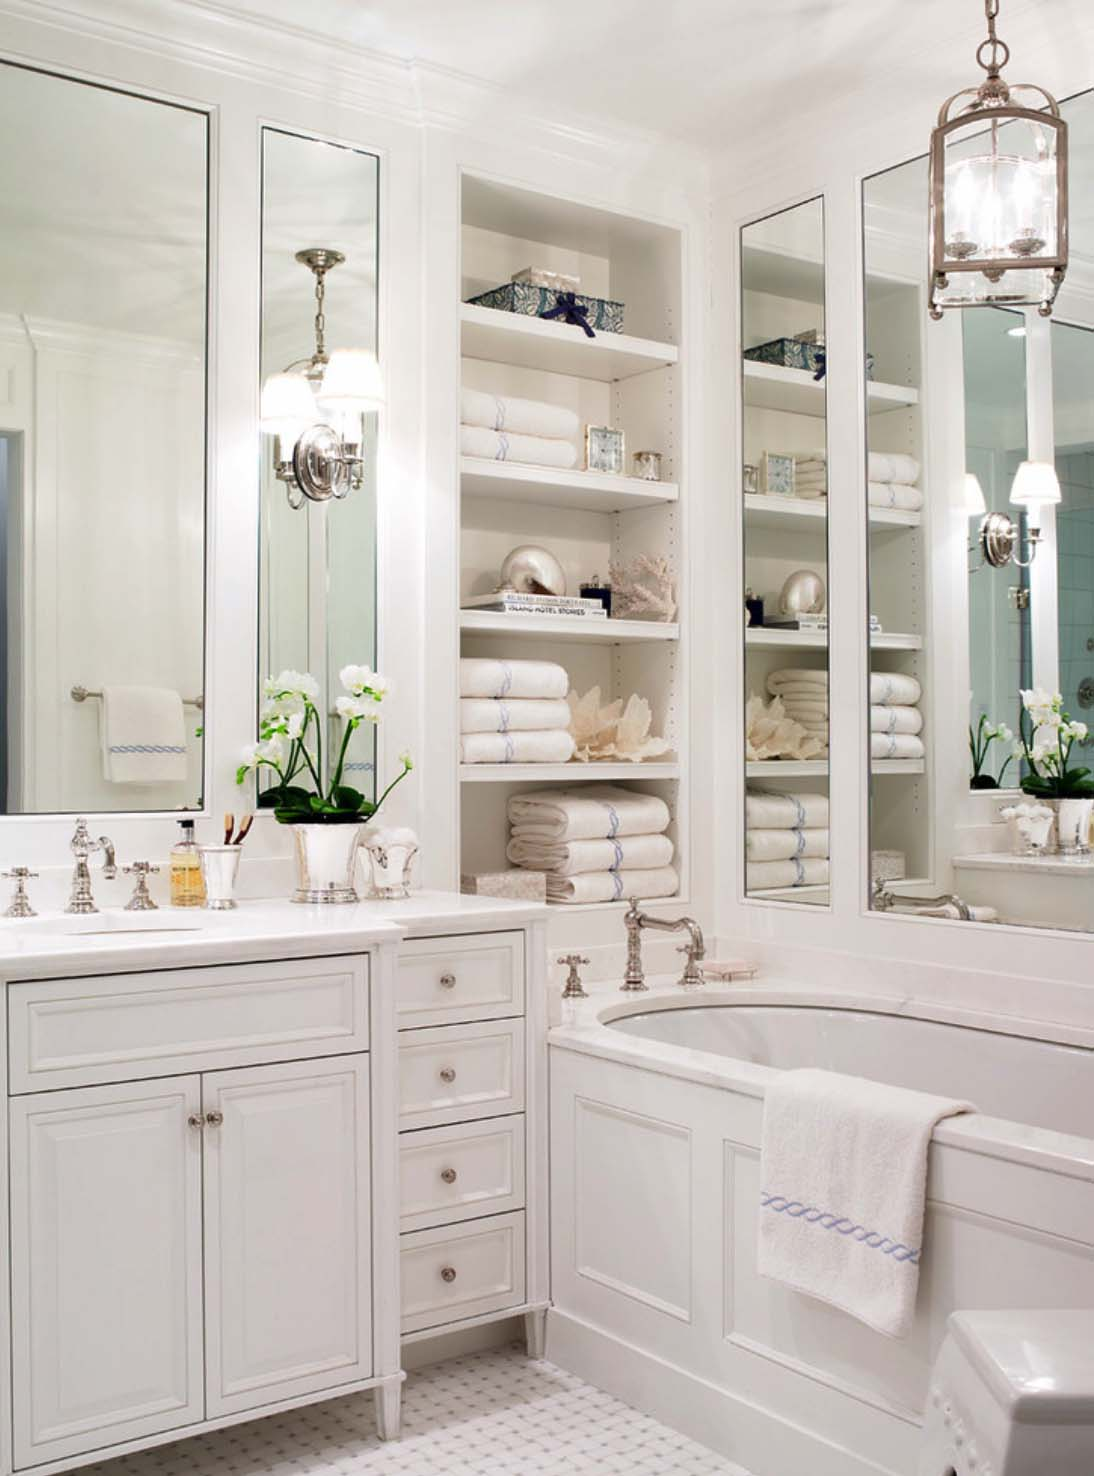 Built In Bathroom Shelves 25 Best Built In Bathroom Shelf And Storage Ideas For 2019